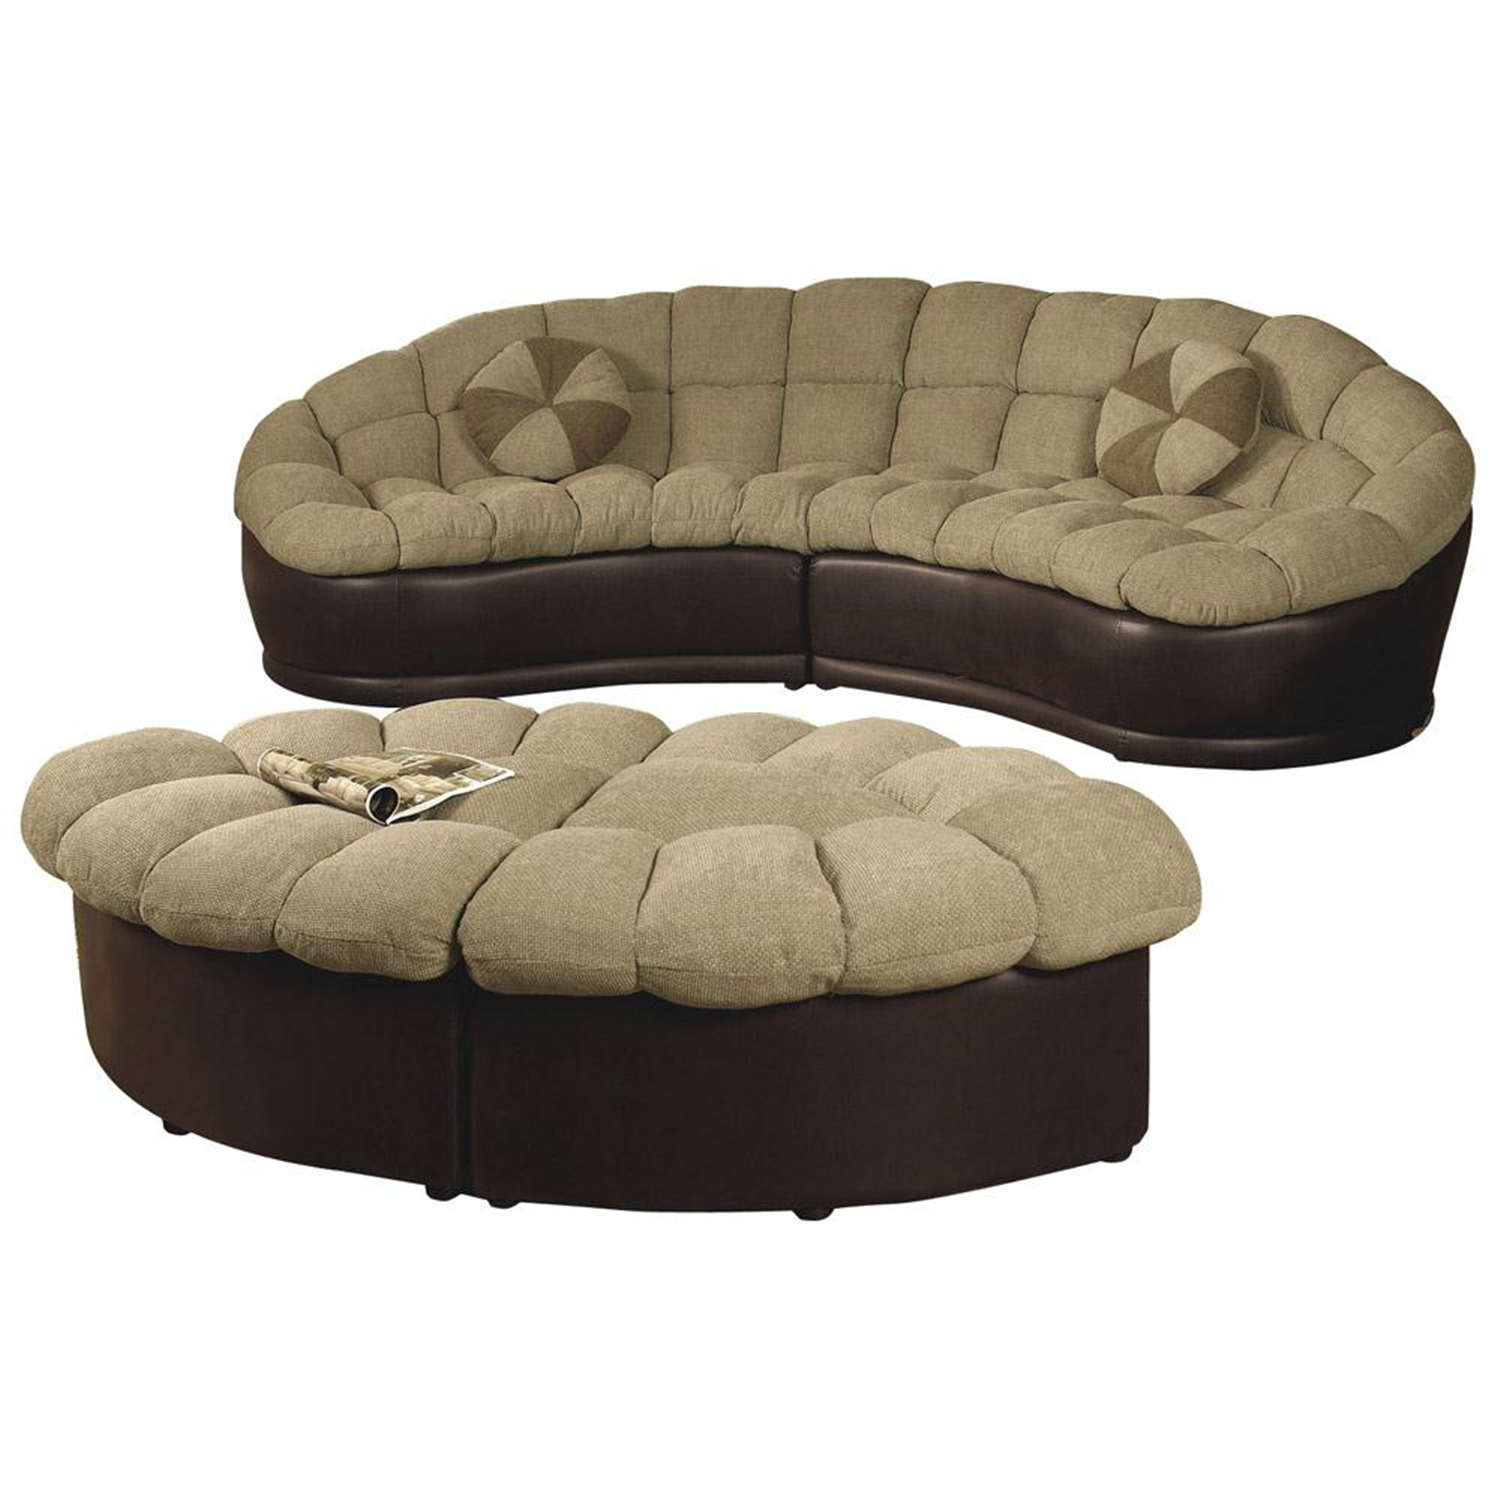 ORE International Love Seat And Ottoman Set By OJ Commerce